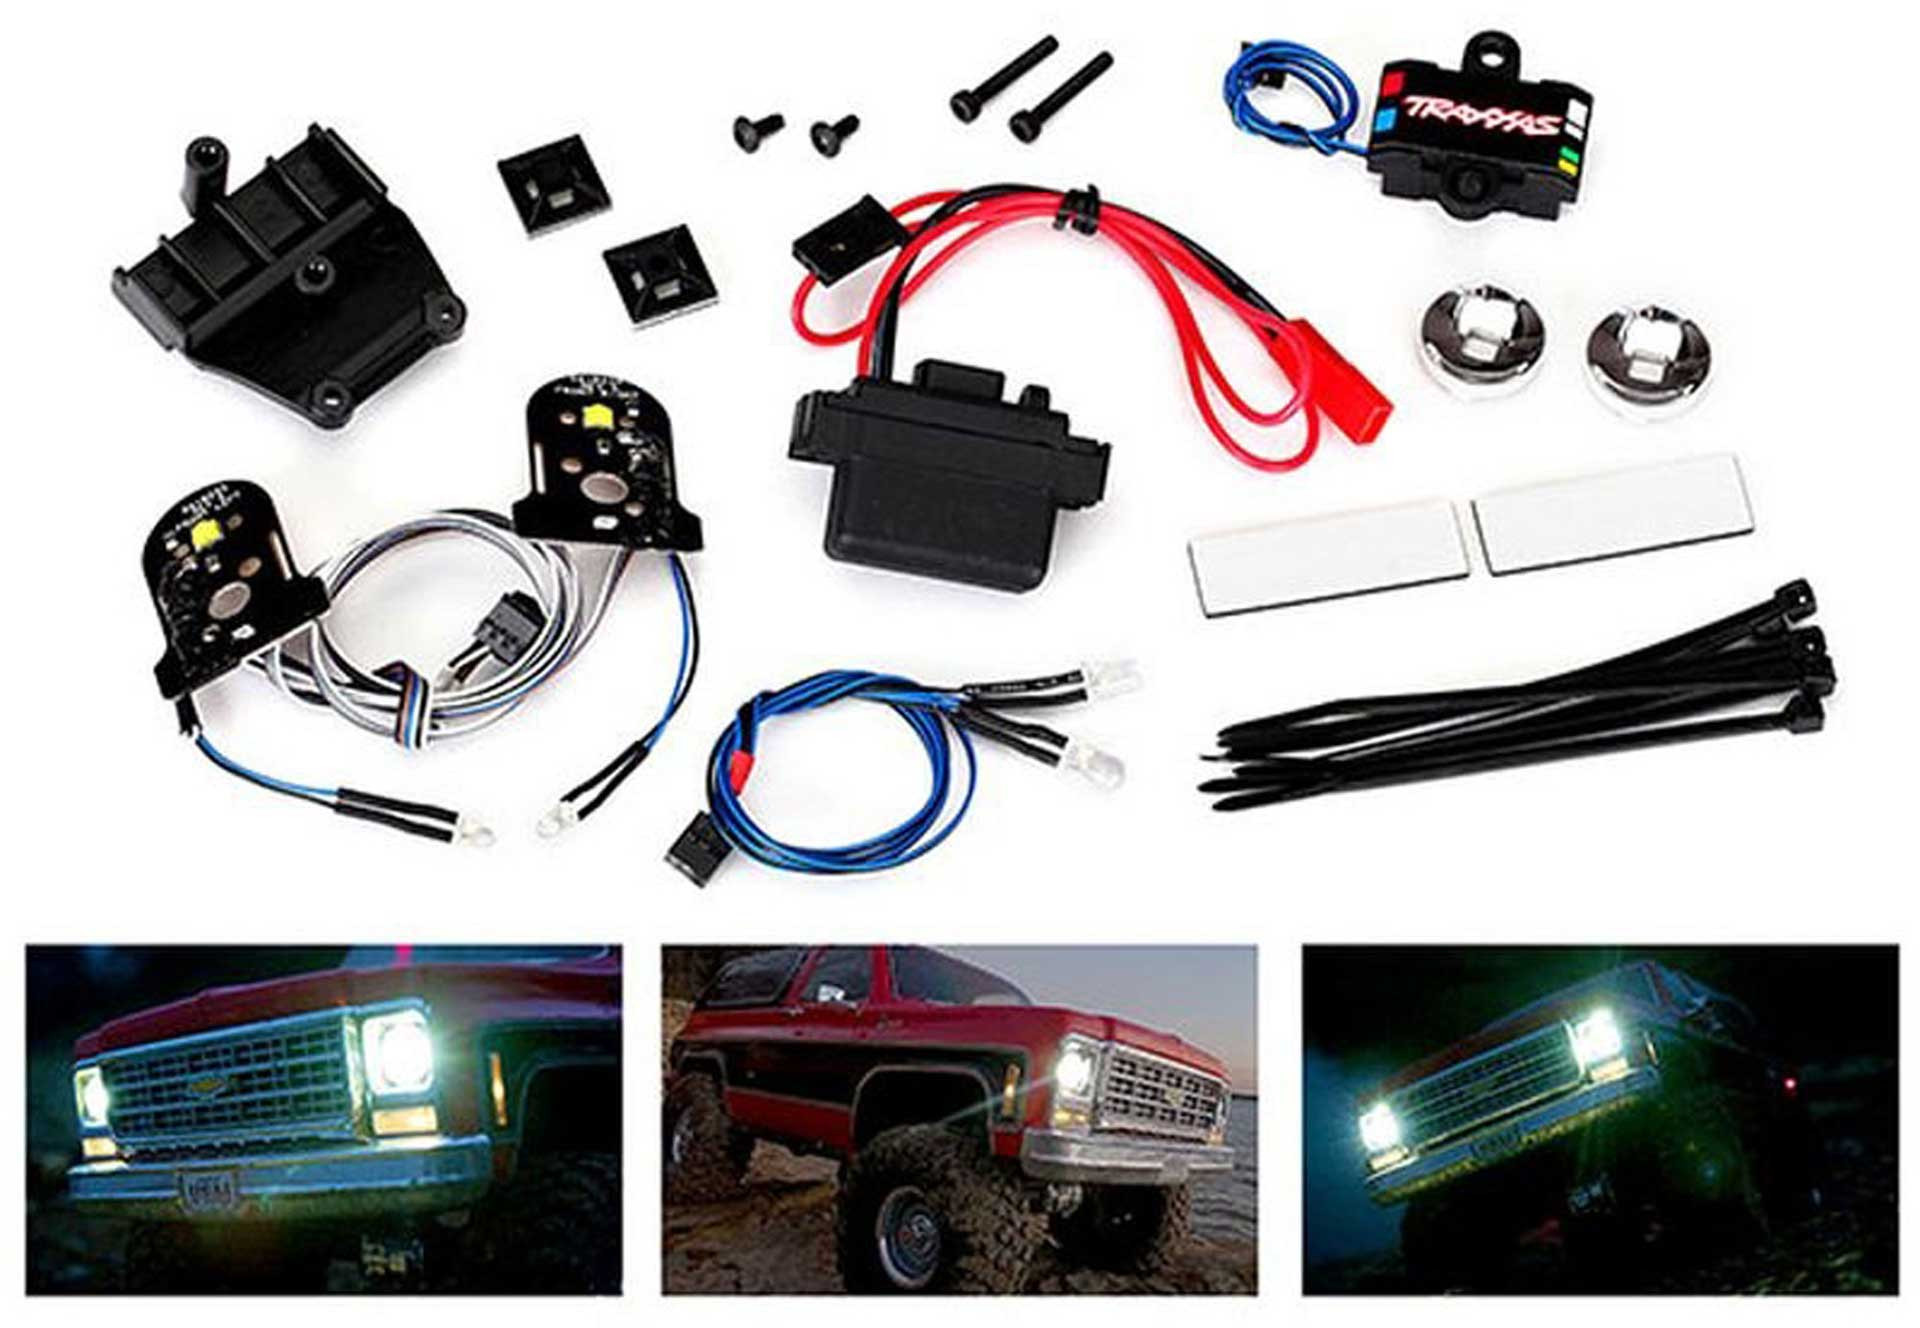 TRAXXAS LED LIGHT SET COMPLETE WITH POWER SUPPLY